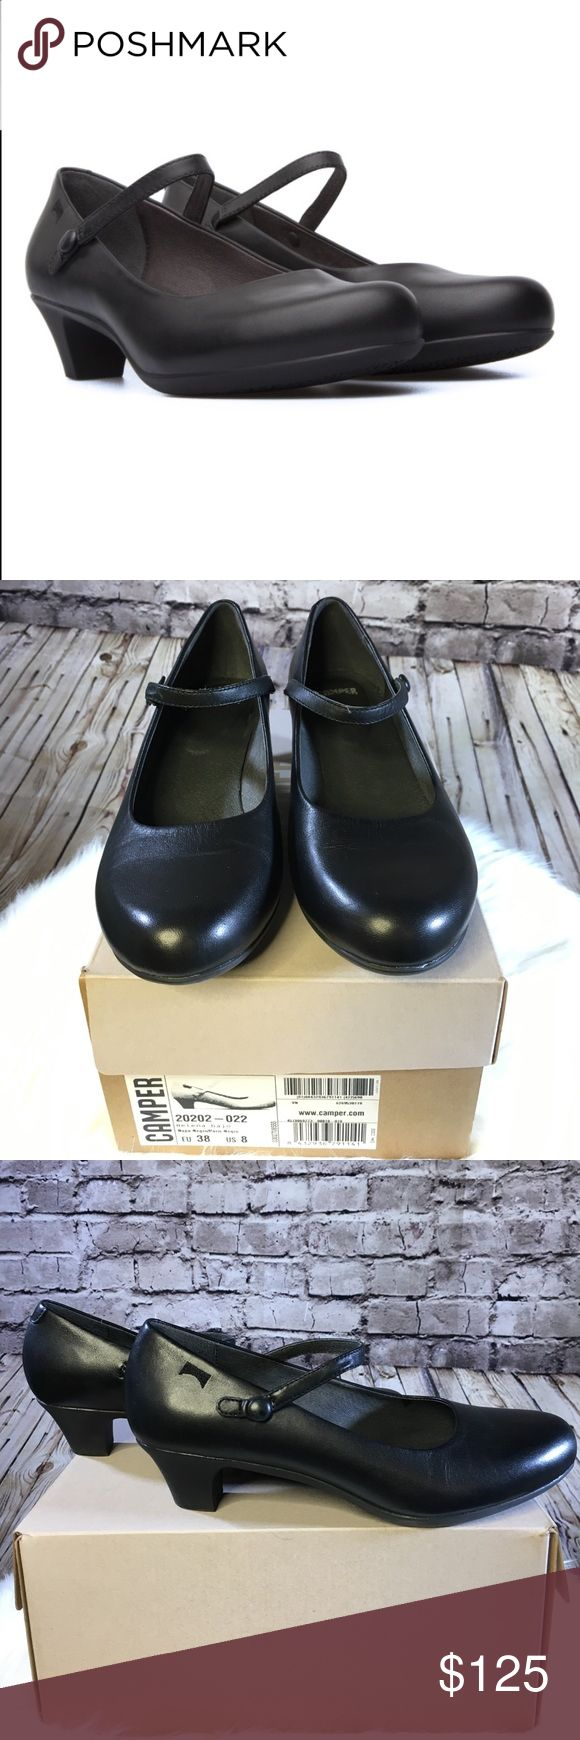 Camper Helena bajo black Mary Jane The mary jane strap, featuring a covered button closure, is elasticized for a perfect fit. The smooth leather upper and low heel will be easy to dress up or down.  *** these are pre owned and have been worn a handful of times. I am a true size 8 and found them a little too tight for my taste but I usually wear only round toe shoes  these are more of a round toe / point hybrid. Eur 38 US 8 comes with box. Camper Shoes